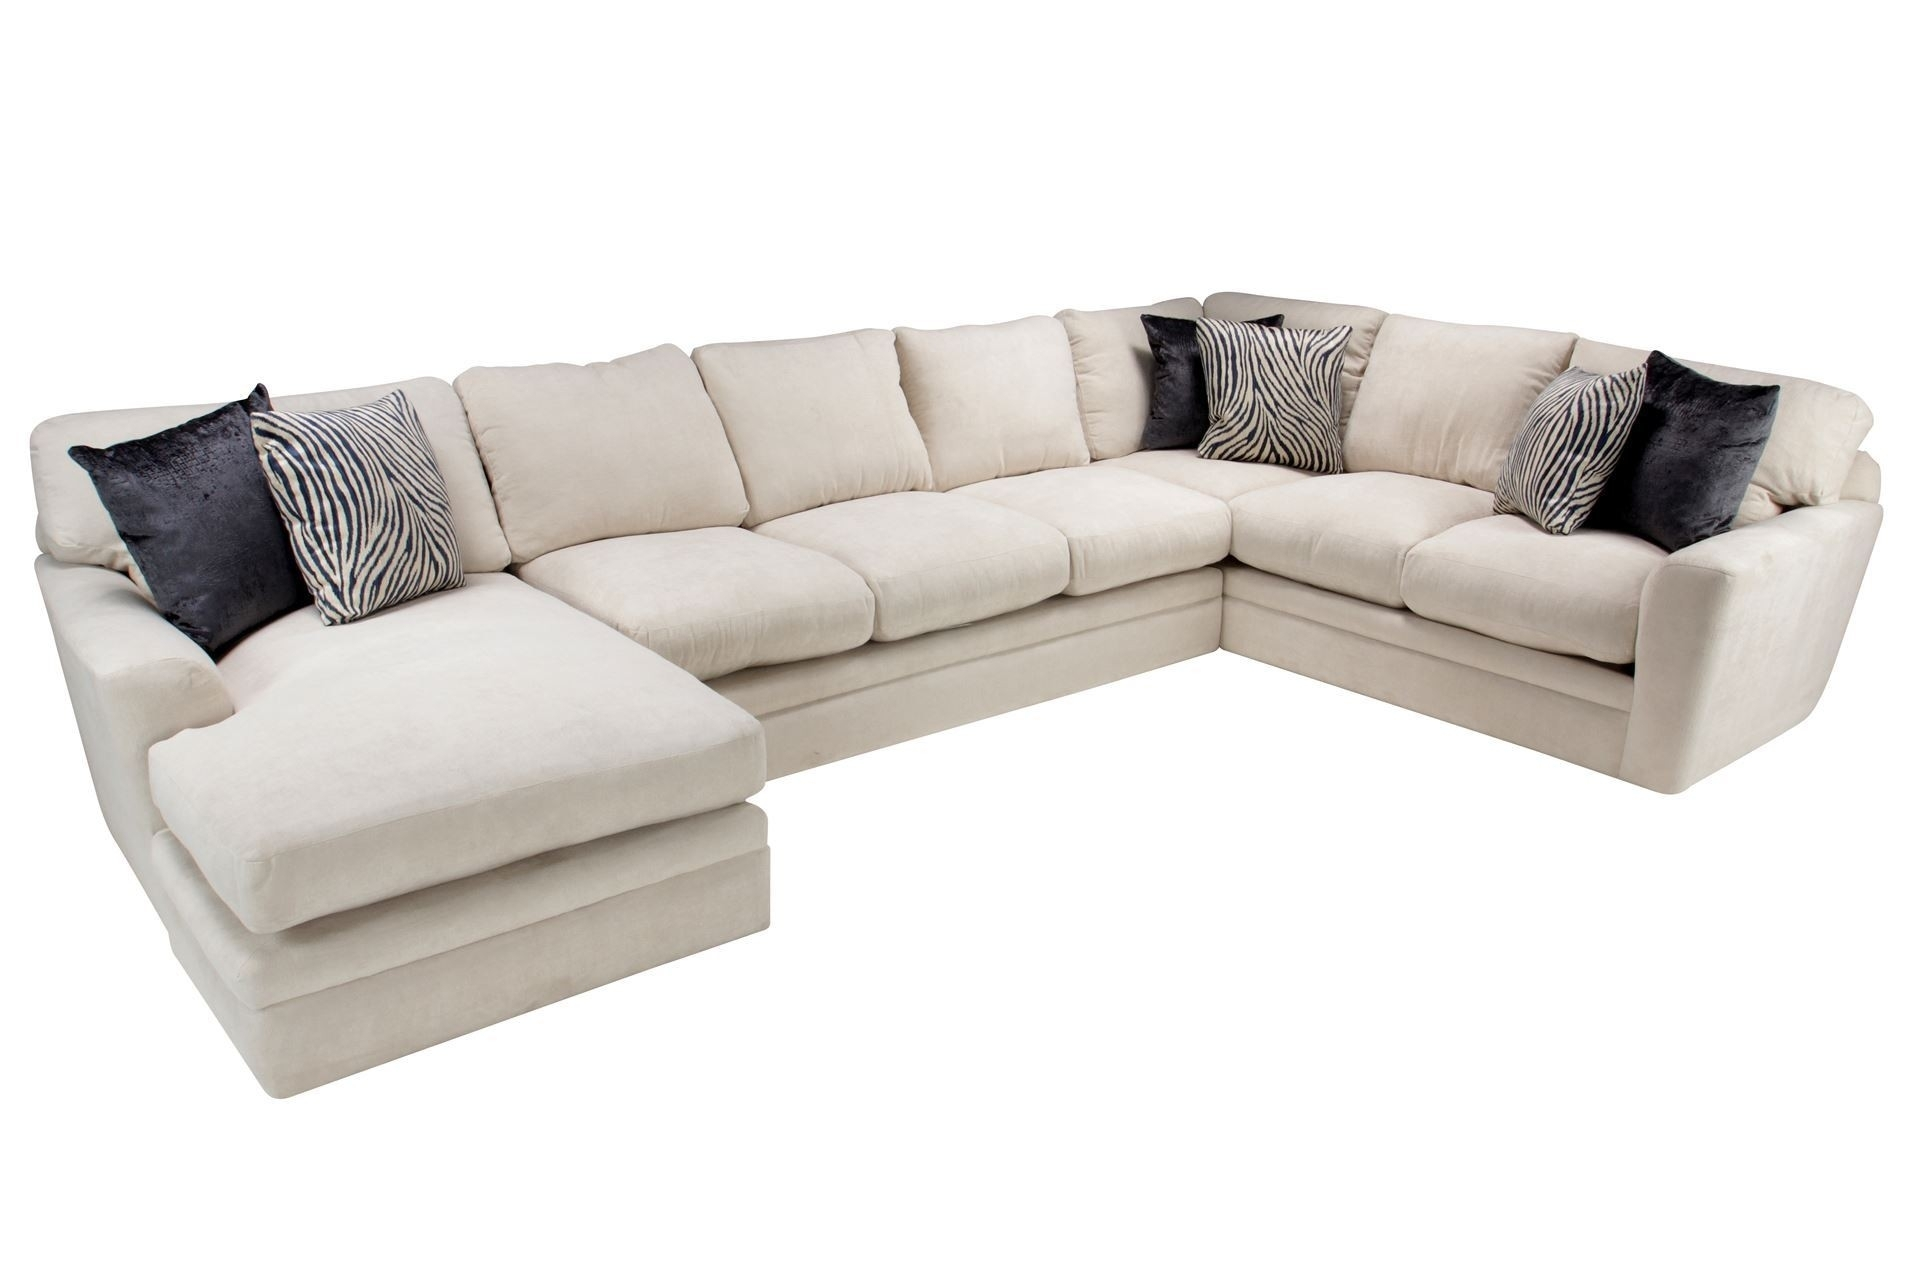 Living Spaces Sectional Sofas Kerri 2 Piece W Raf Chaise 107153 0 Within Kerri 2 Piece Sectionals With Laf Chaise (View 22 of 25)